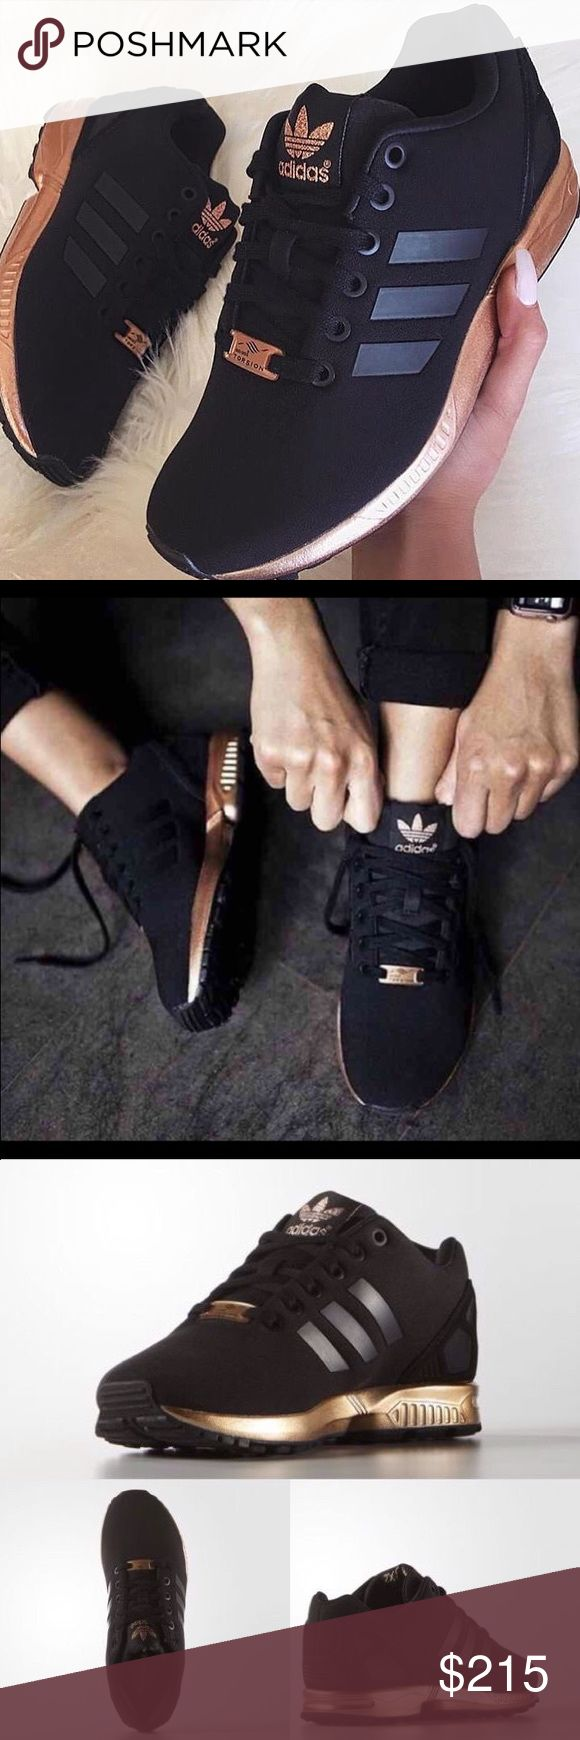 Adidas Zx Flux Black and Rose Gold Limited Edition. Sold out. Highly sought after. Brand new never worn. 9 in women's. As seen on Pinterest.  NOTE: These run a half size to a one whole size big. They are too big for me and that's why I'm selling them. Brand New in Box. Adidas Shoes Sneakers